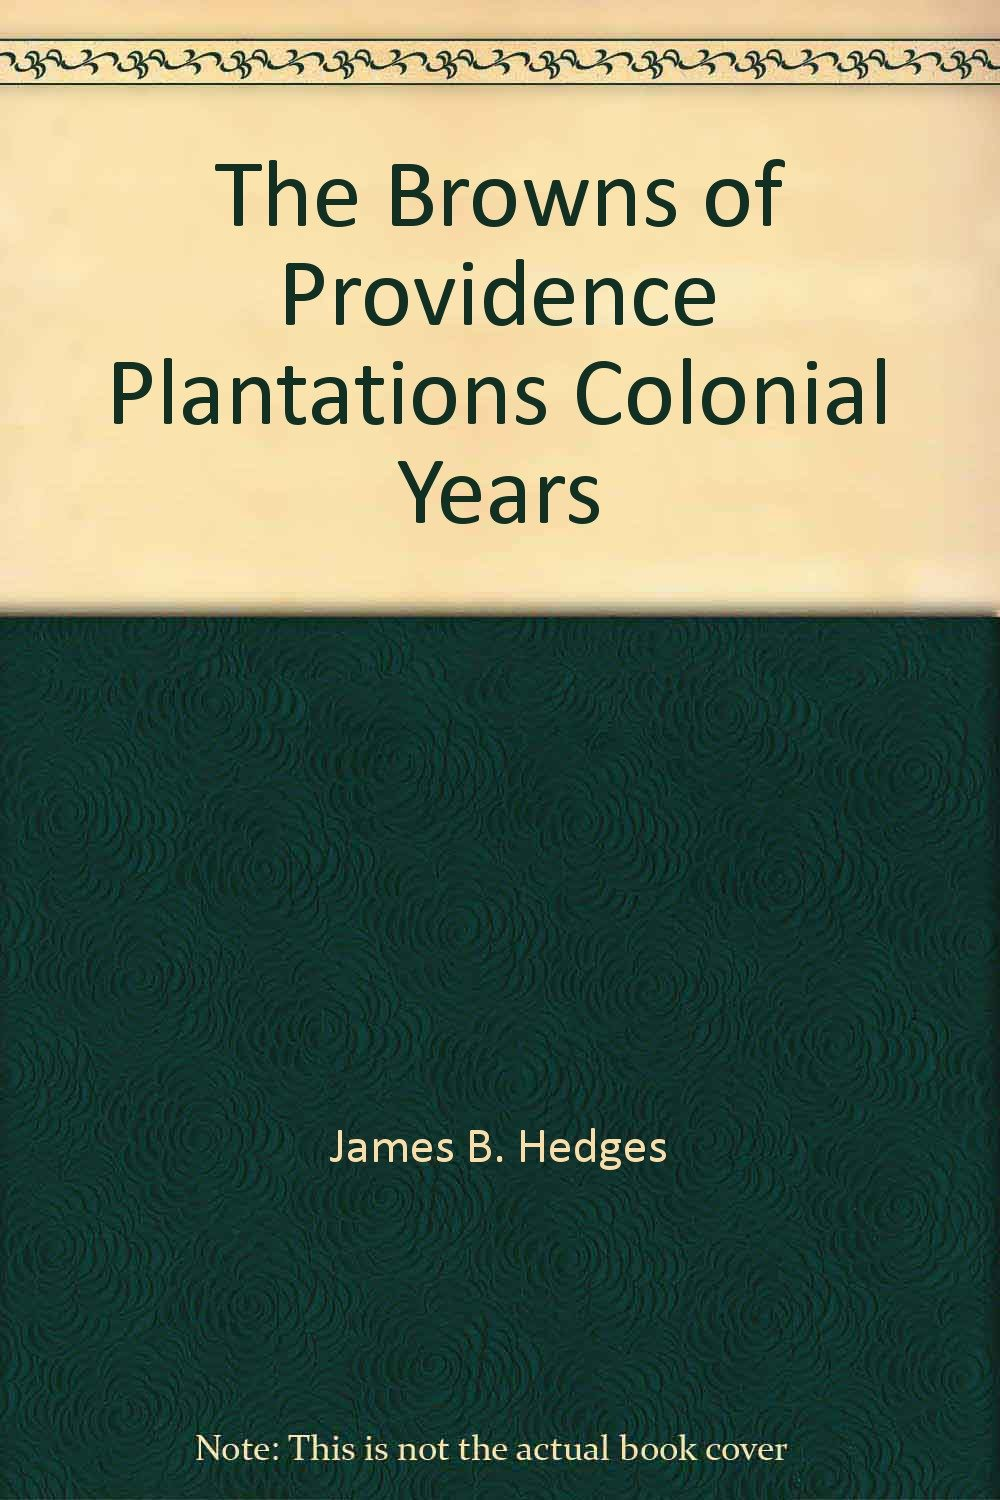 The Browns of Providence Plantations: Colonial Years pdf